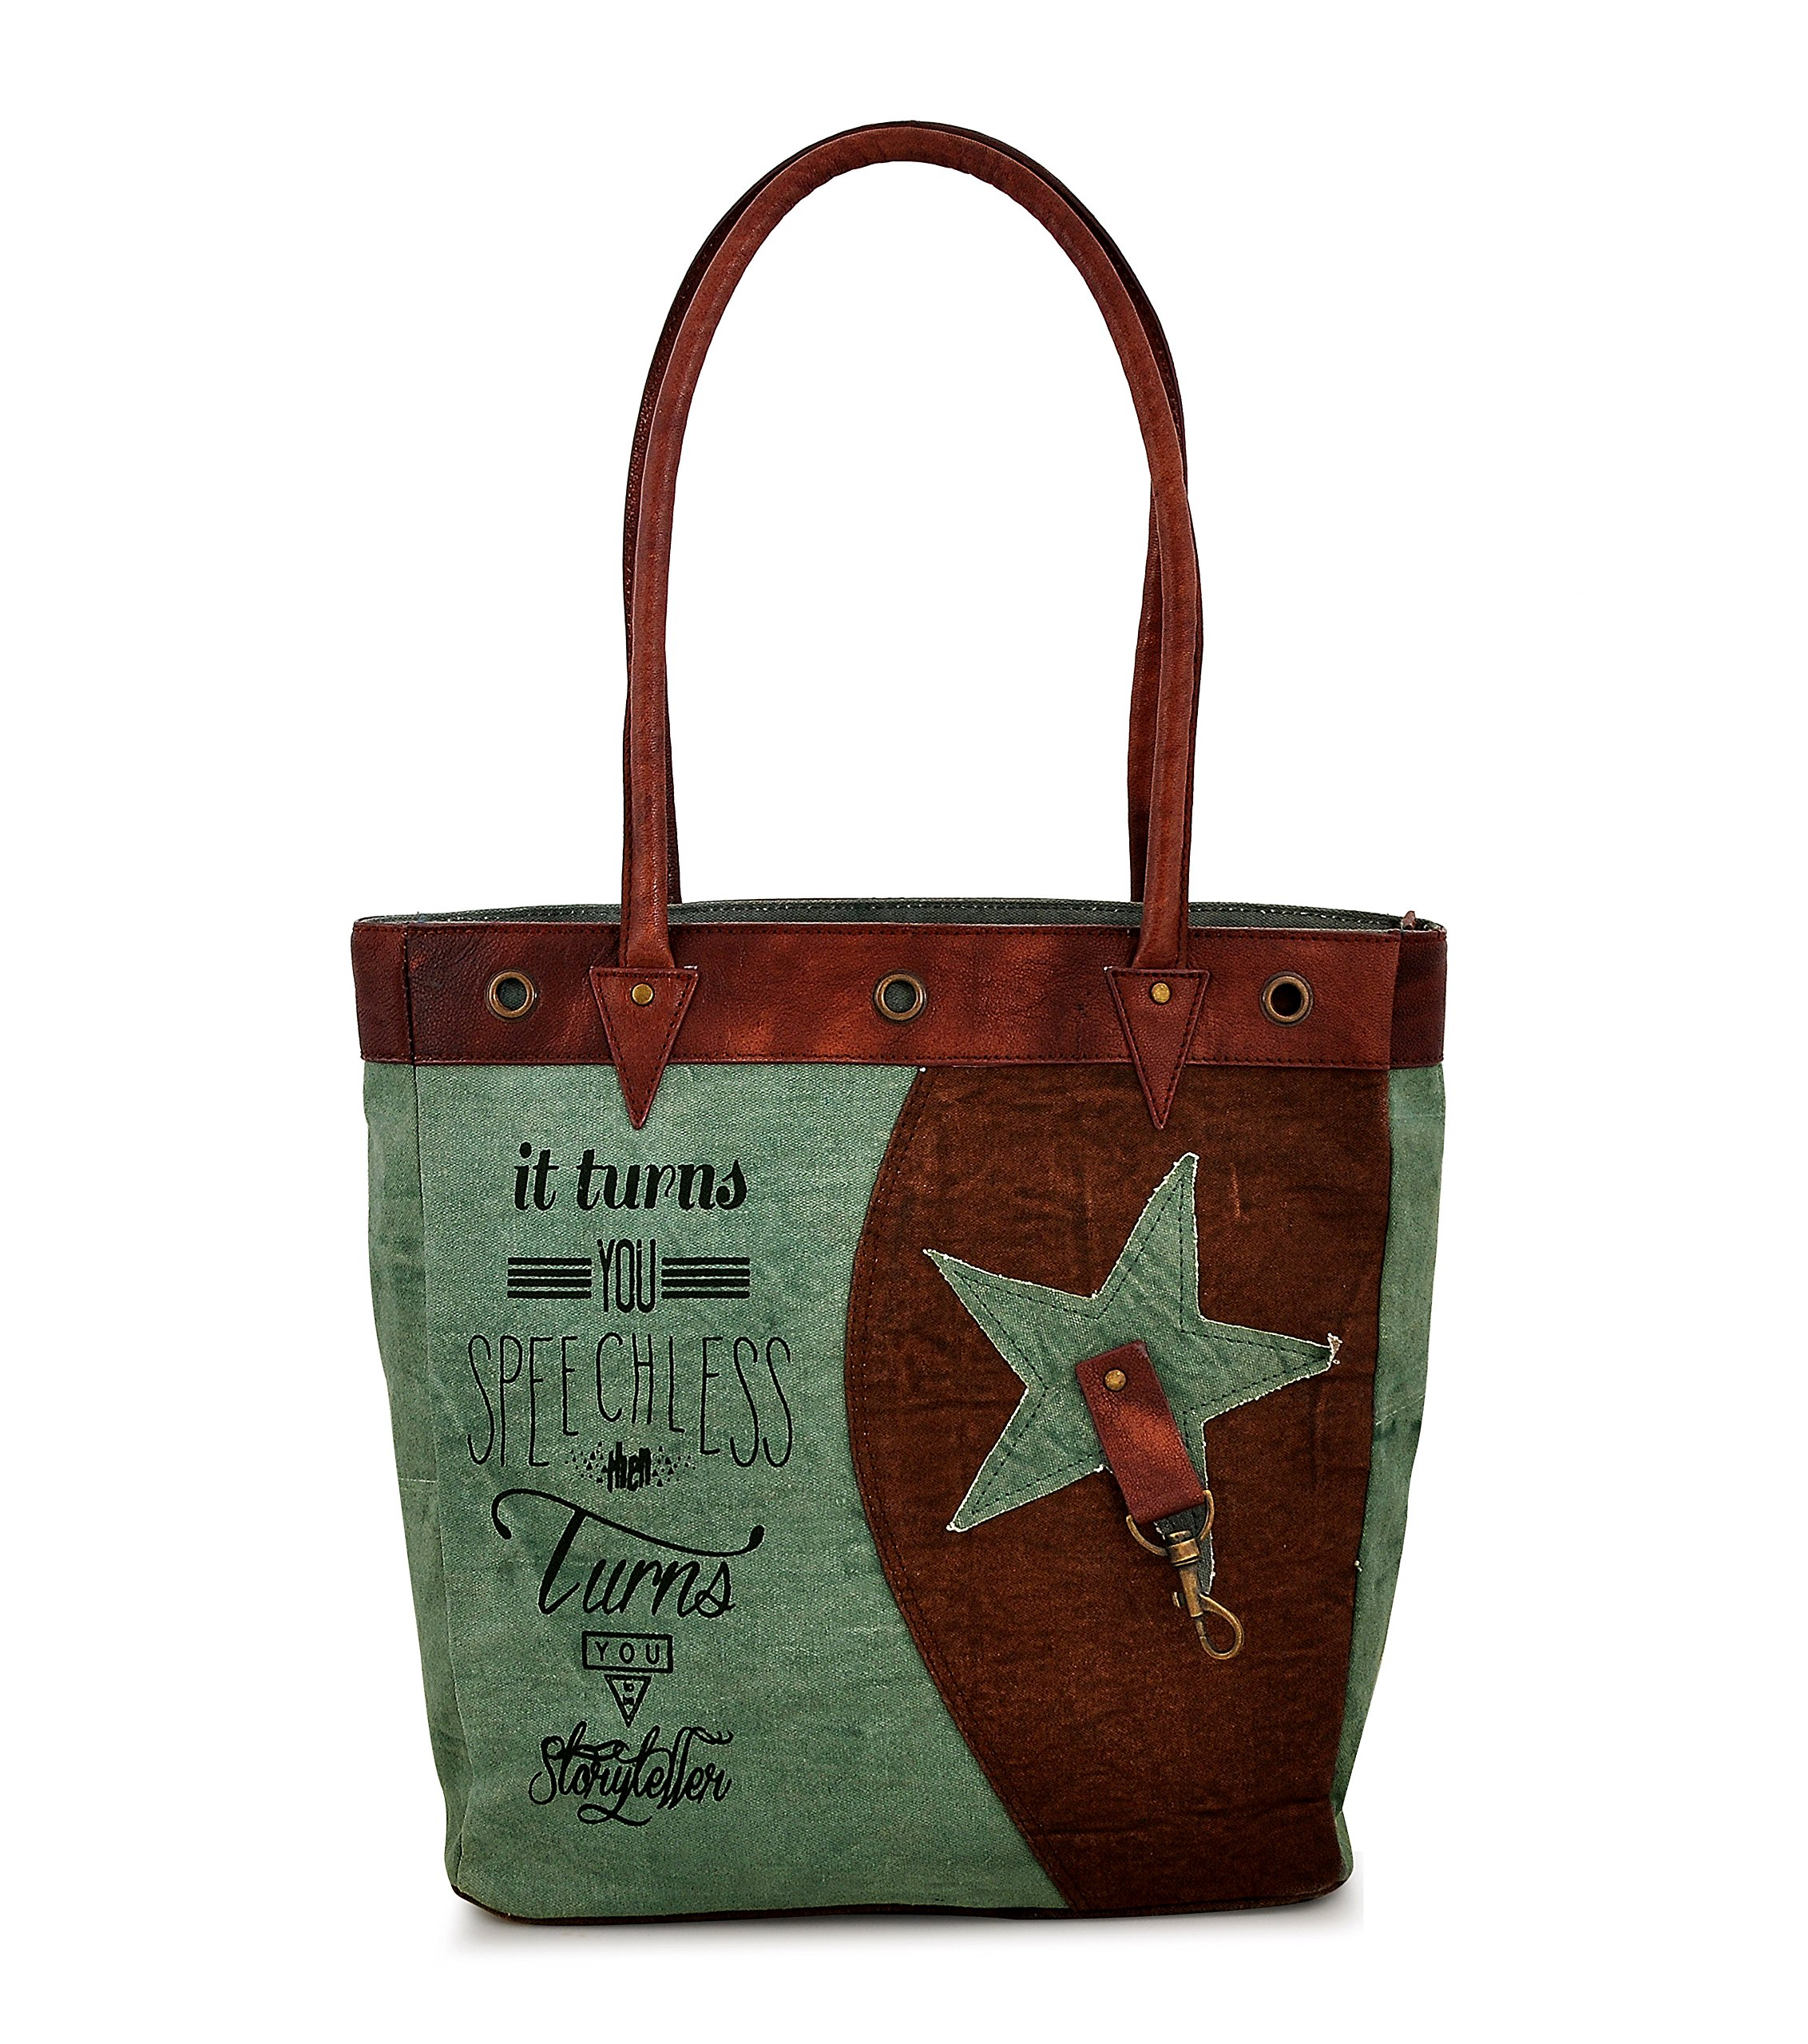 Tote bag for Women, Unique Design, Made of Canvas and Leather, Eco friendly bag, Handbags for Women by Daphne (Speechless)